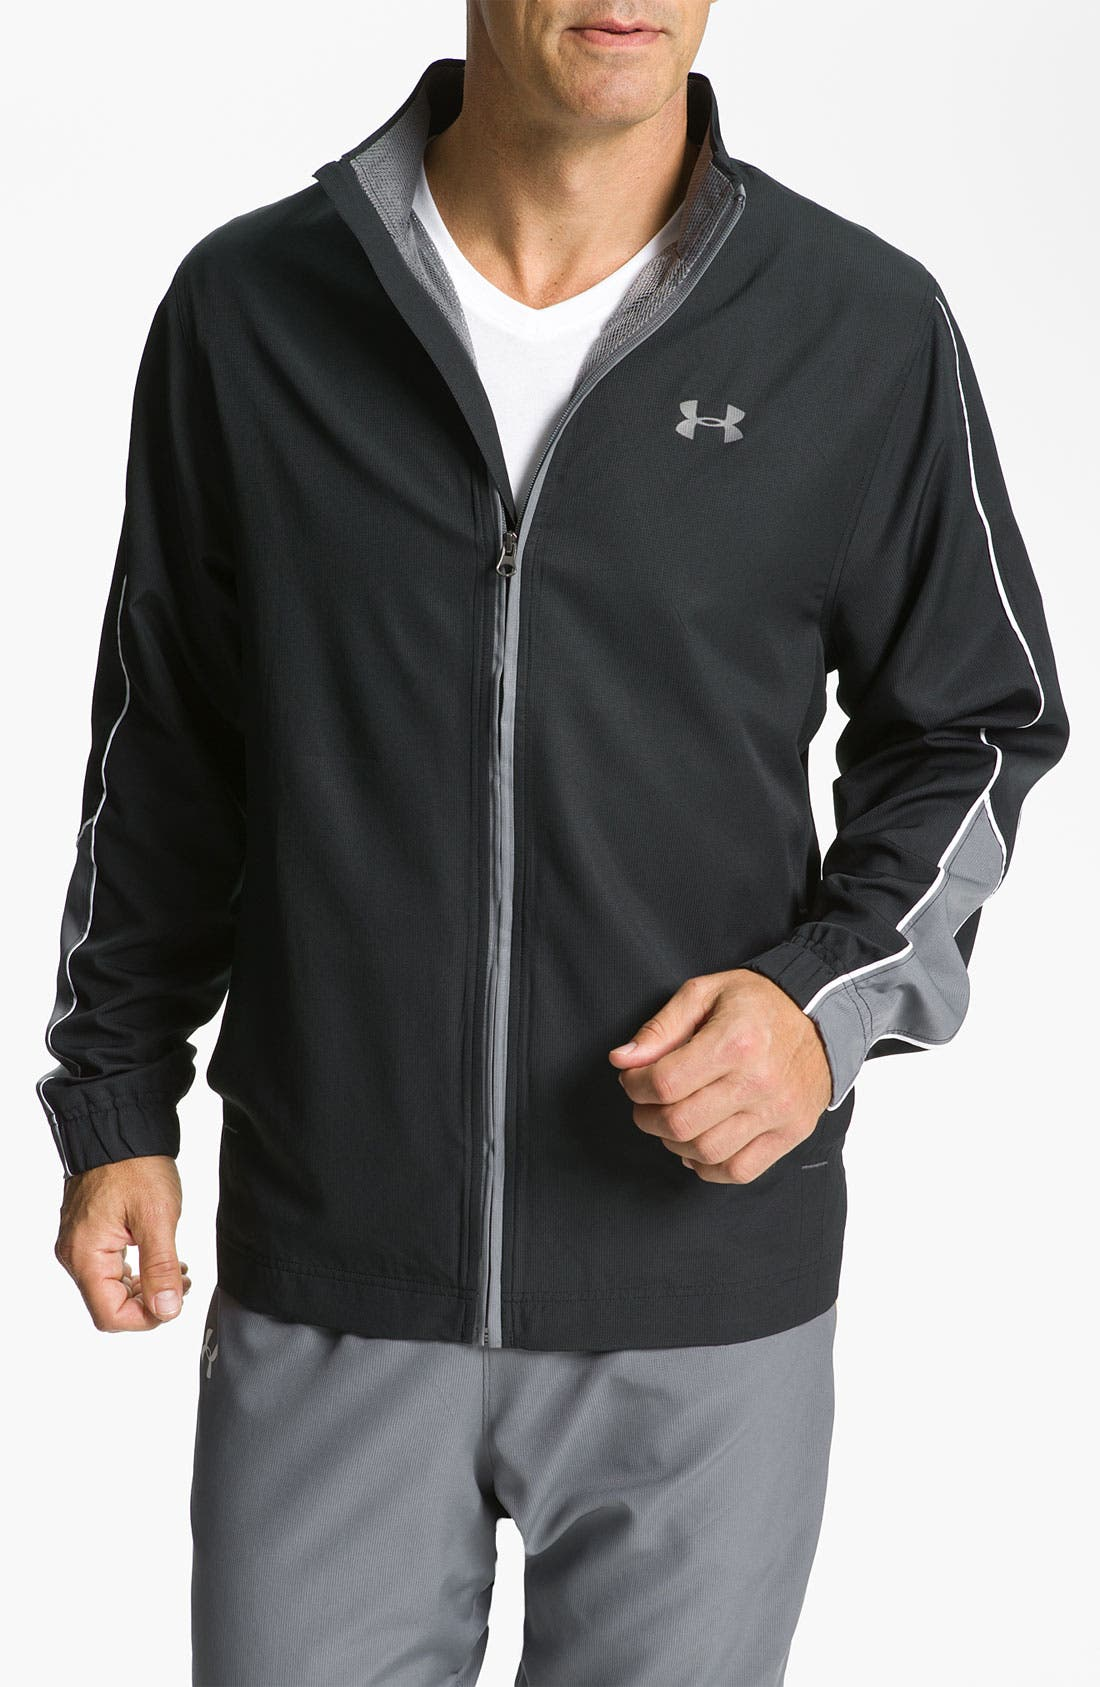 Alternate Image 1 Selected - Under Armour 'Bandito' Loose Fit Woven Jacket